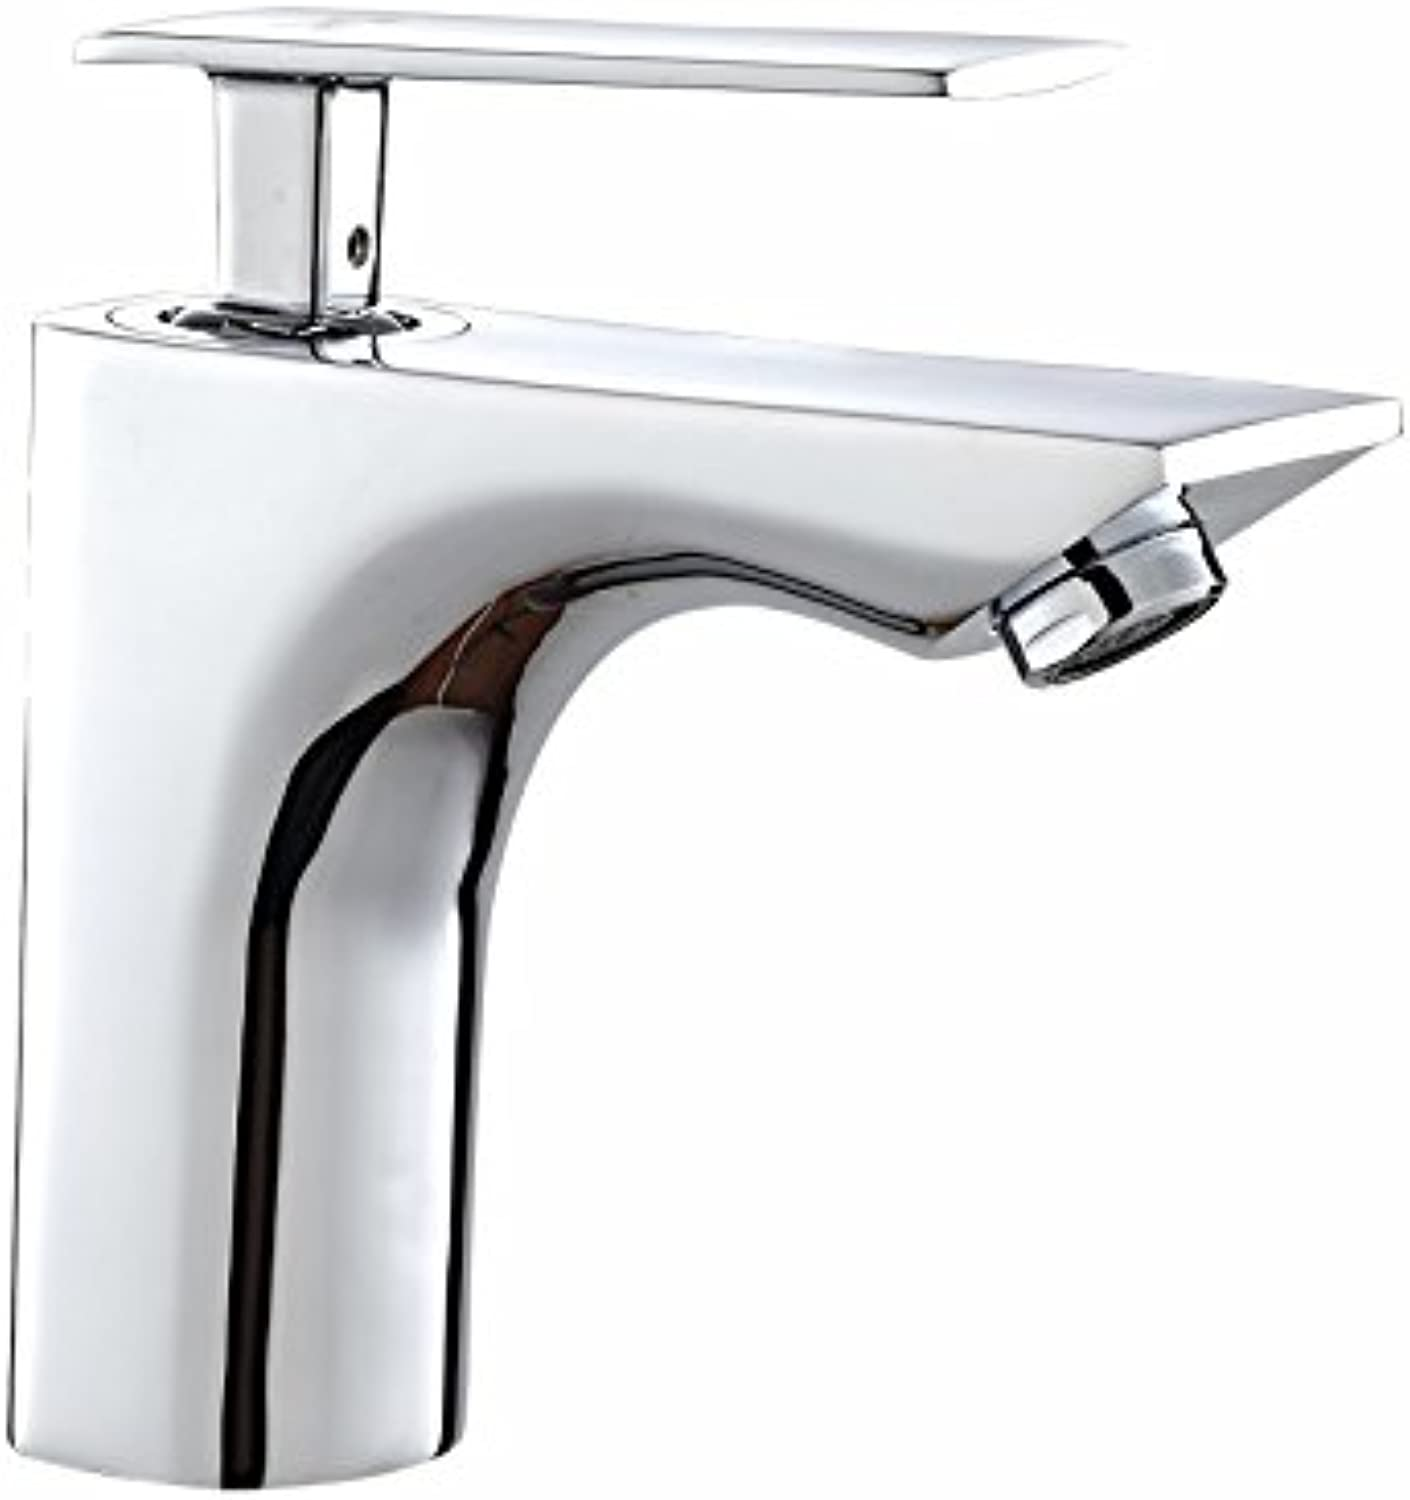 Sun LL Bathroom Copper Bathroom Faucet Bathroom Washbasin Faucet Single Handle Single Hole ( color   Silver )